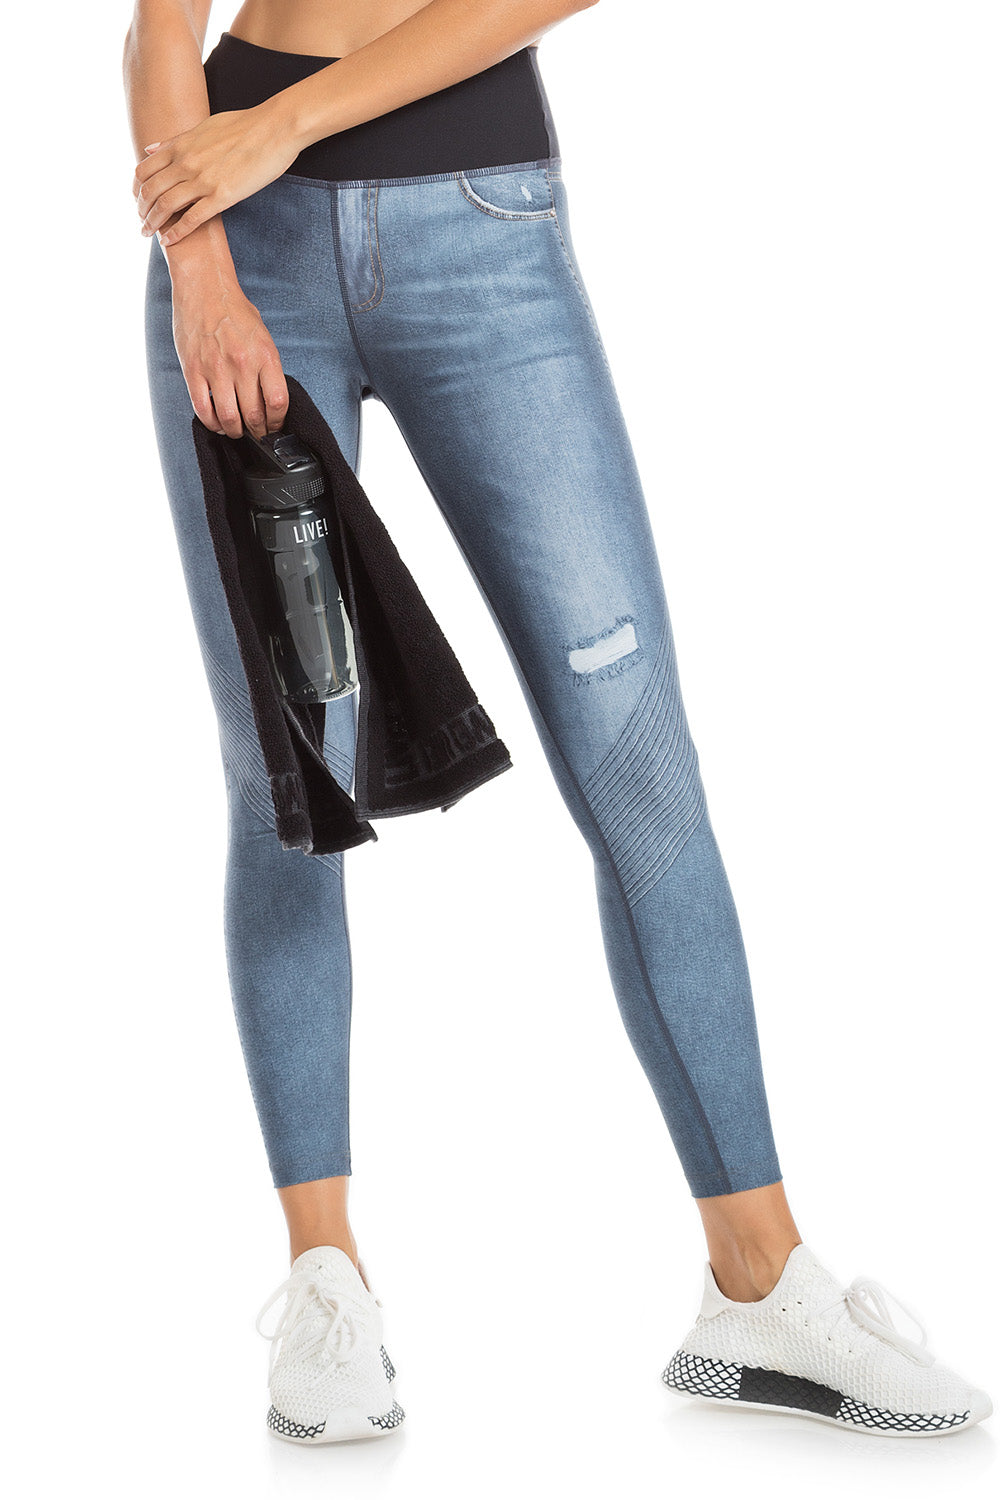 Downtown Denim Reversible Legging